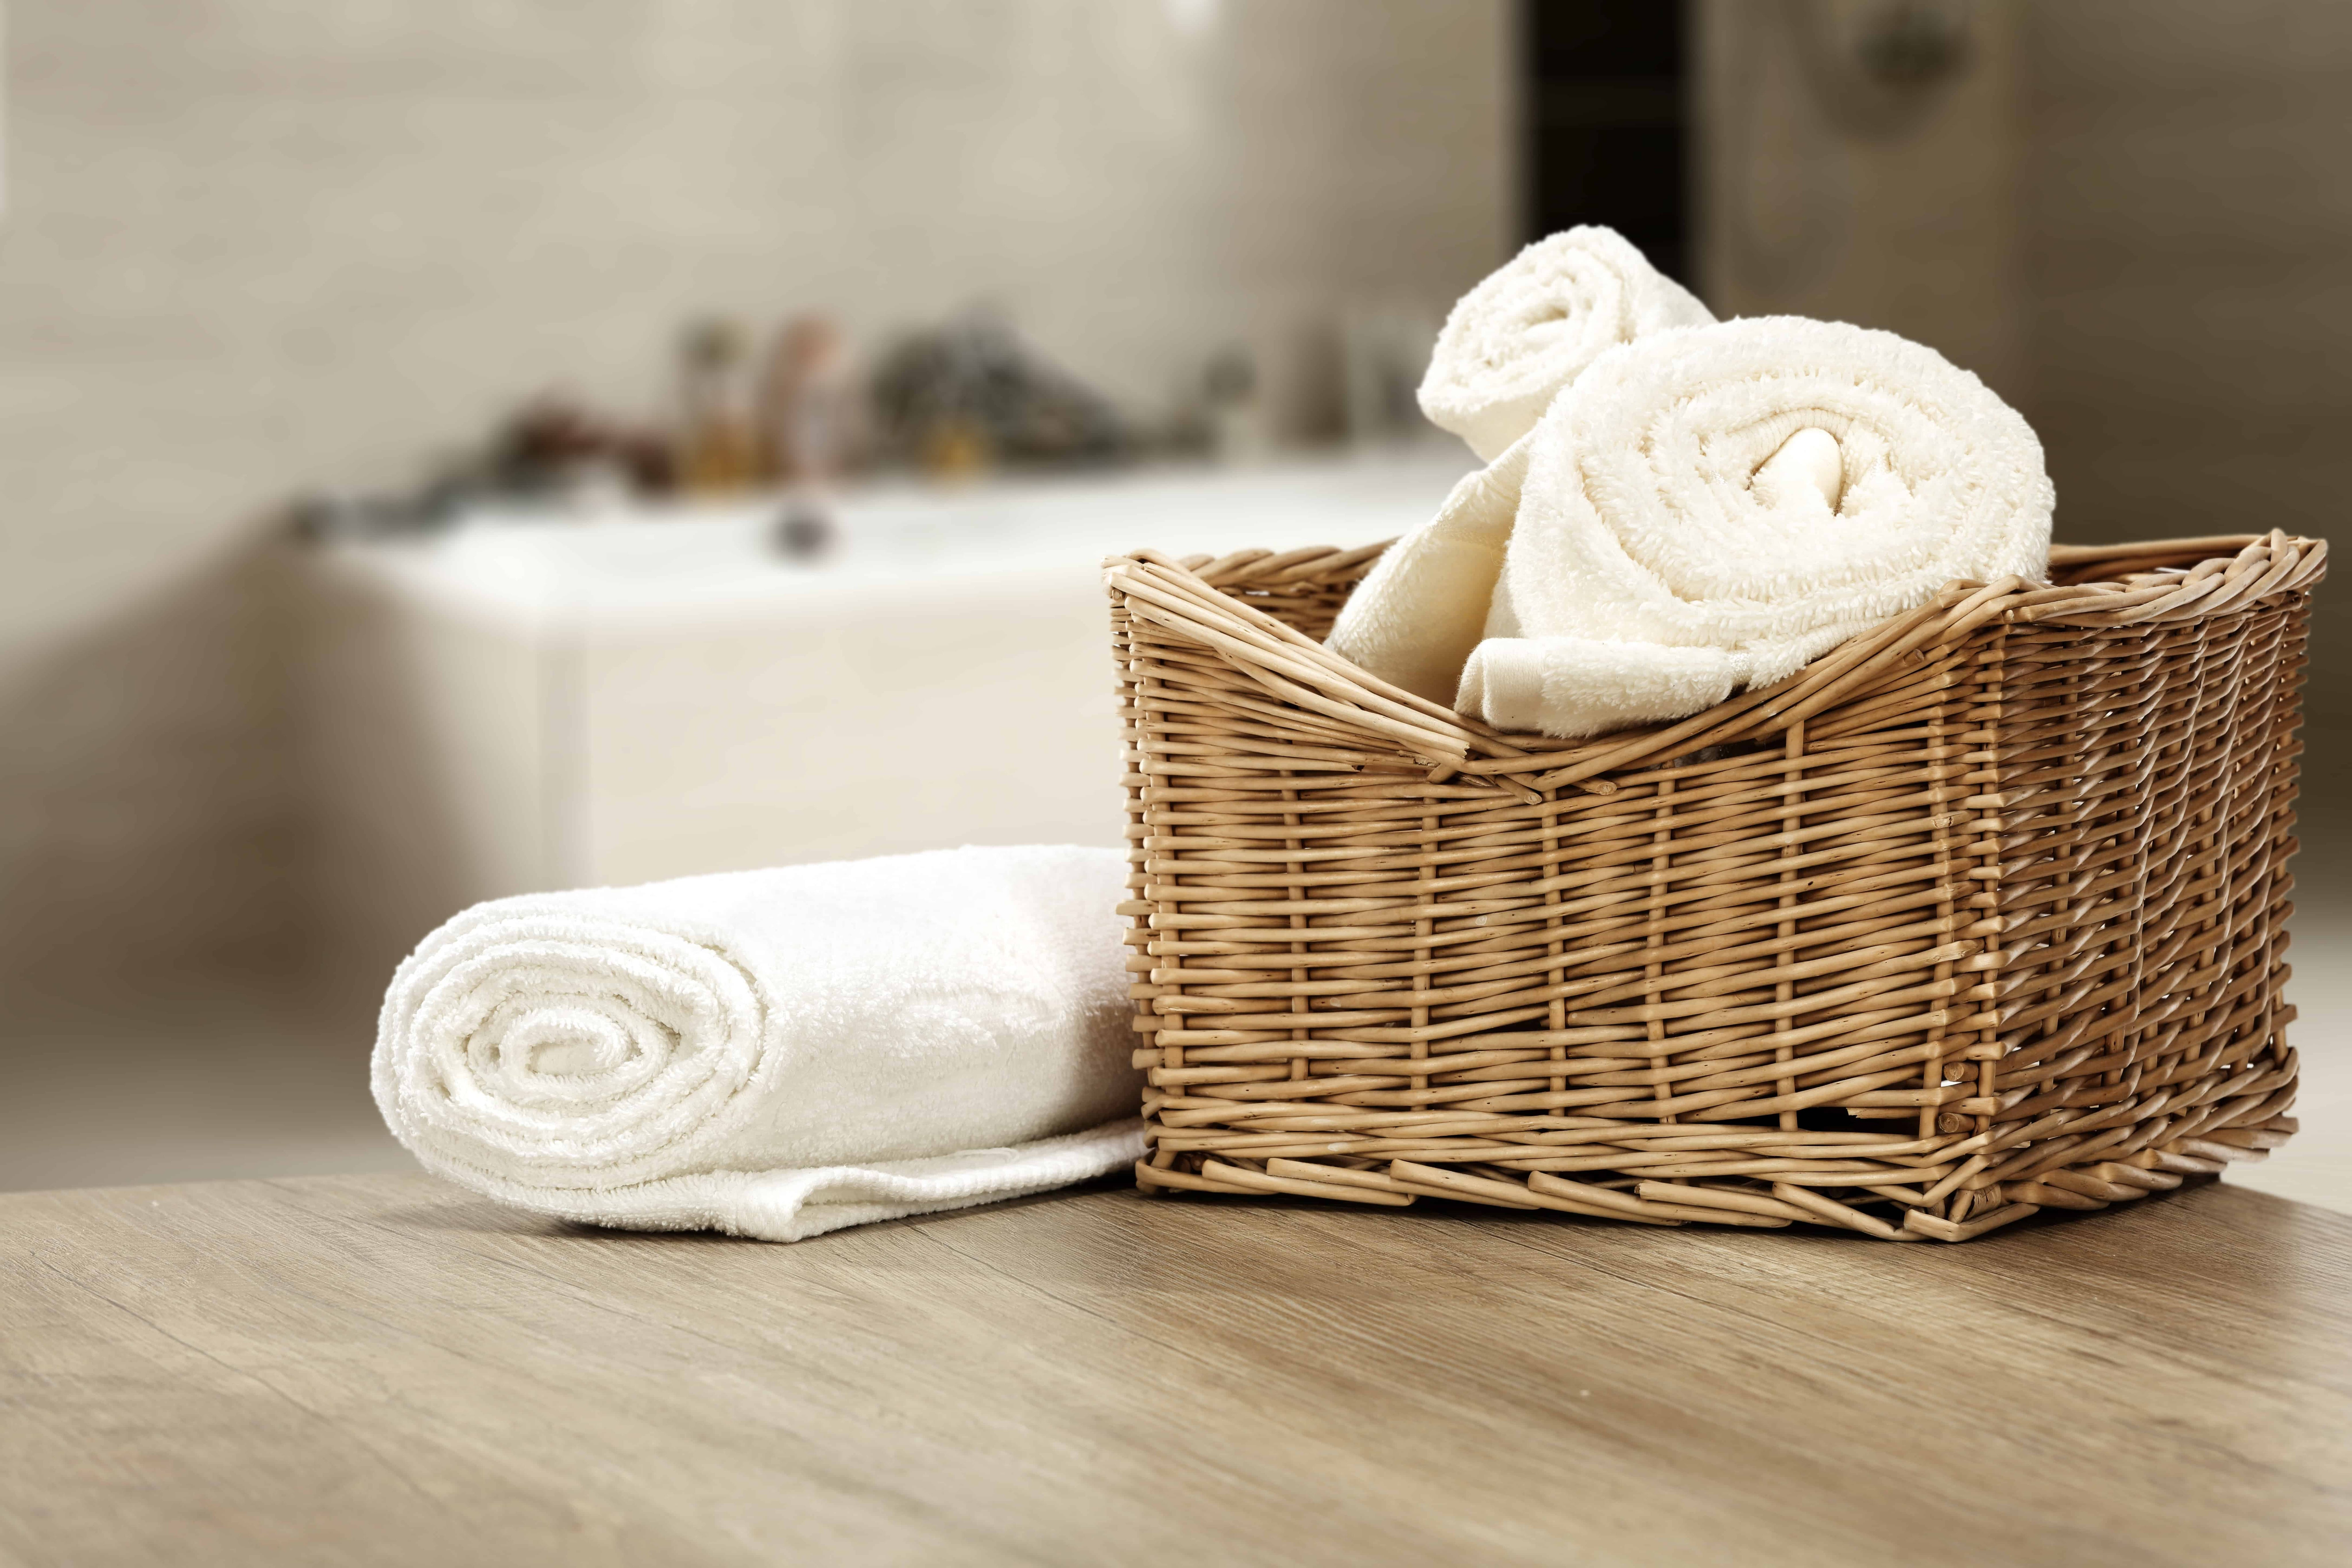 white towels in a wooden basket